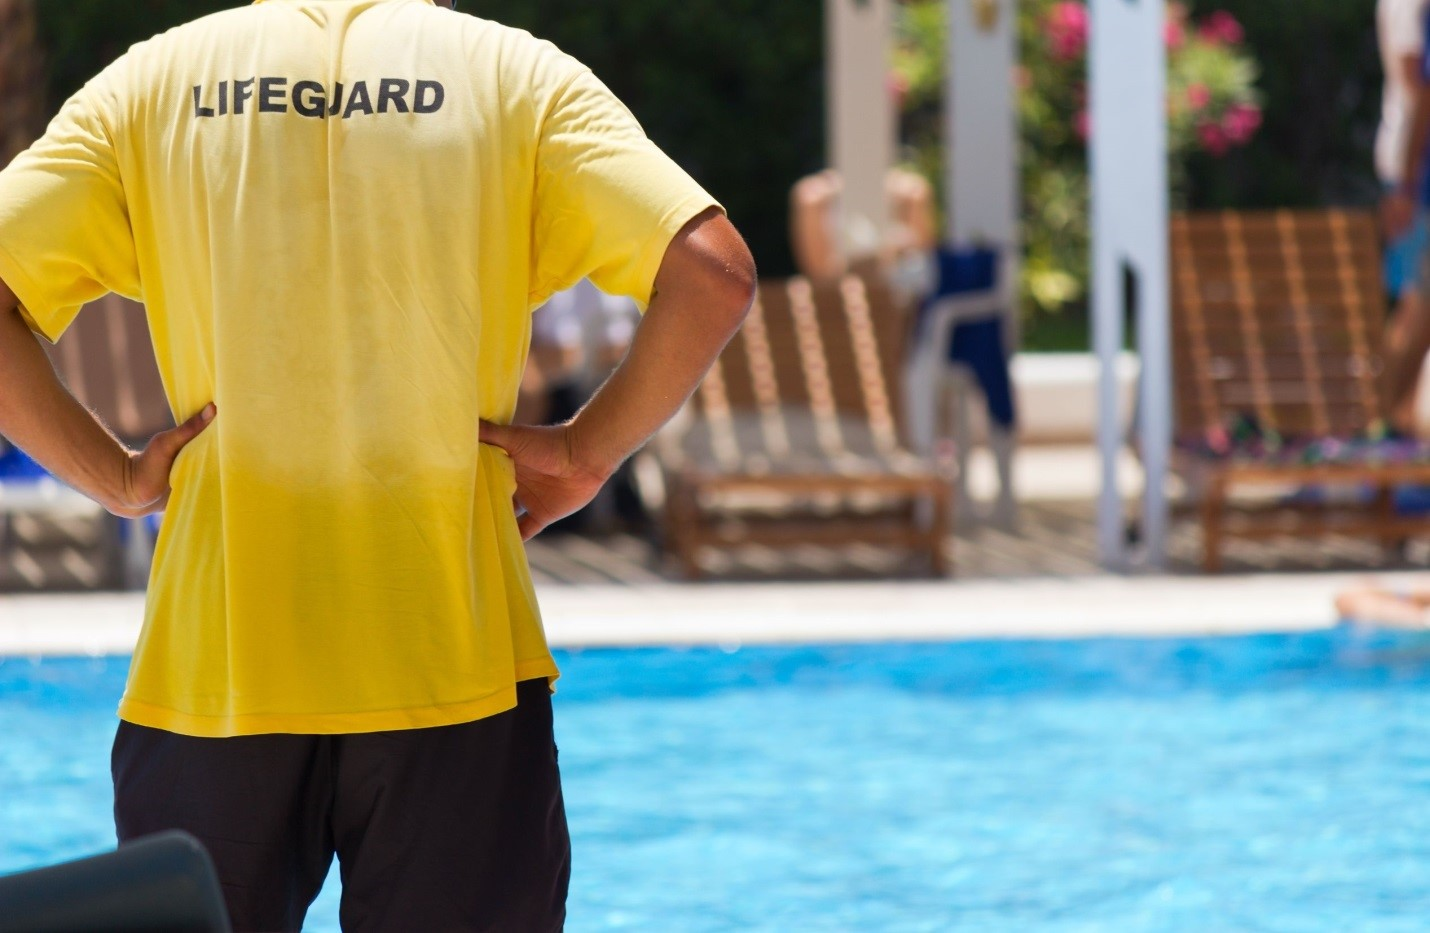 The 1.5 Million Kids on Cruises Each Year Need Lifeguards - Cruse Injury Lawyer